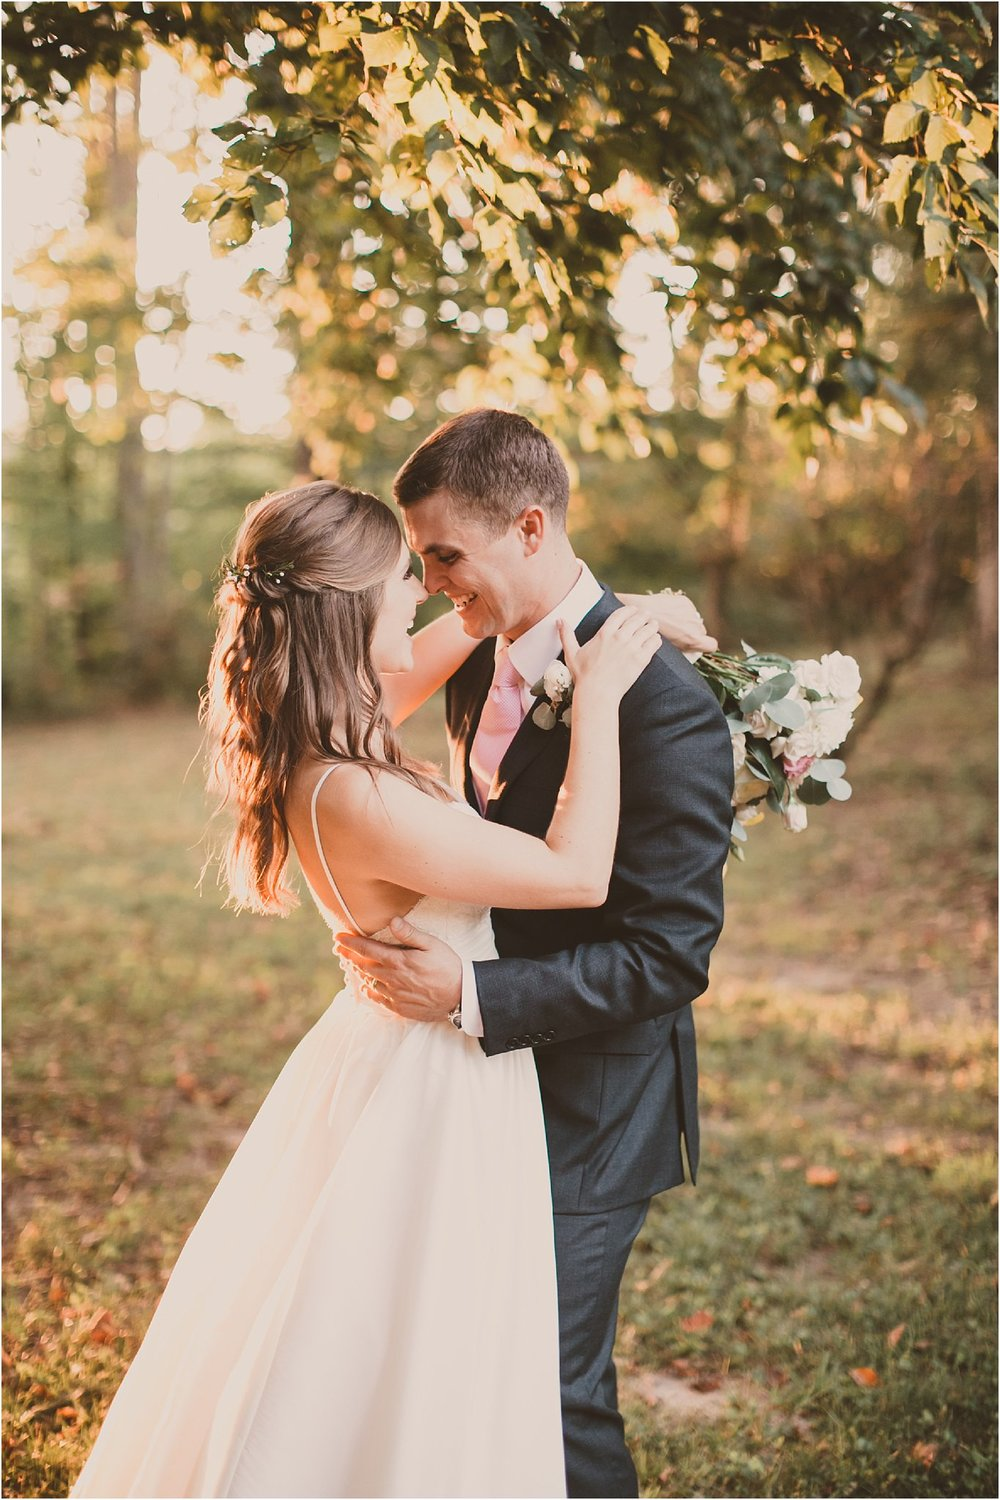 PattengalePhotography_BohoWedding_RichmondVirginia_Photographer_SevenSprings_Manor_Estate_Wedding_Hannah&Thomas_Elegant_Fall_Bohemian_blush_gold_farm__0079.jpg